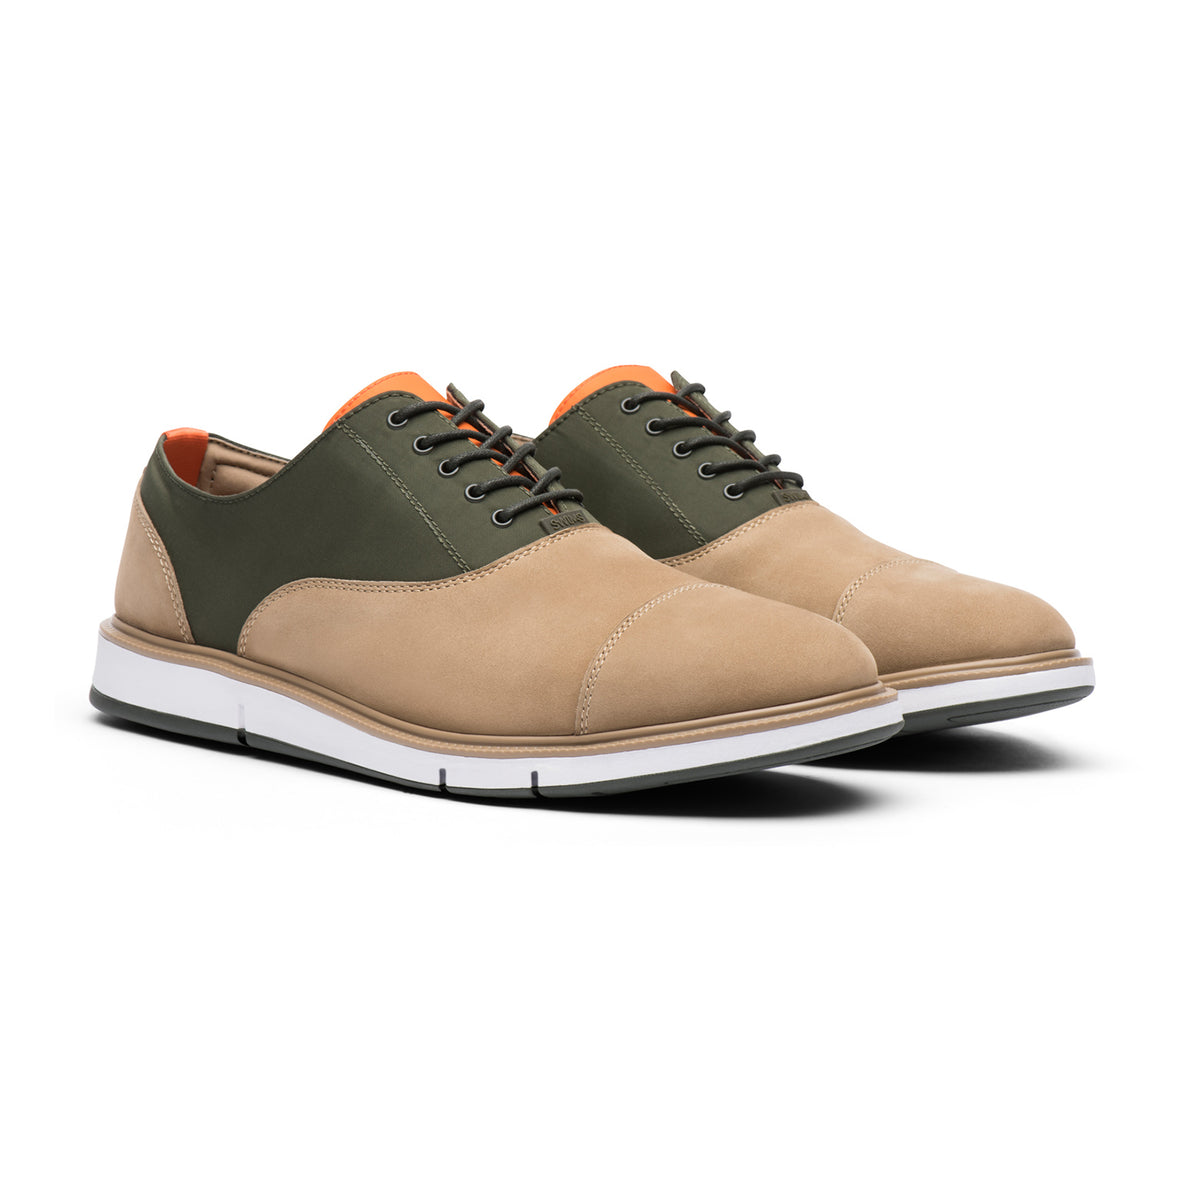 Motion Cap Toe - background::white,variant::Gaucho/Olive